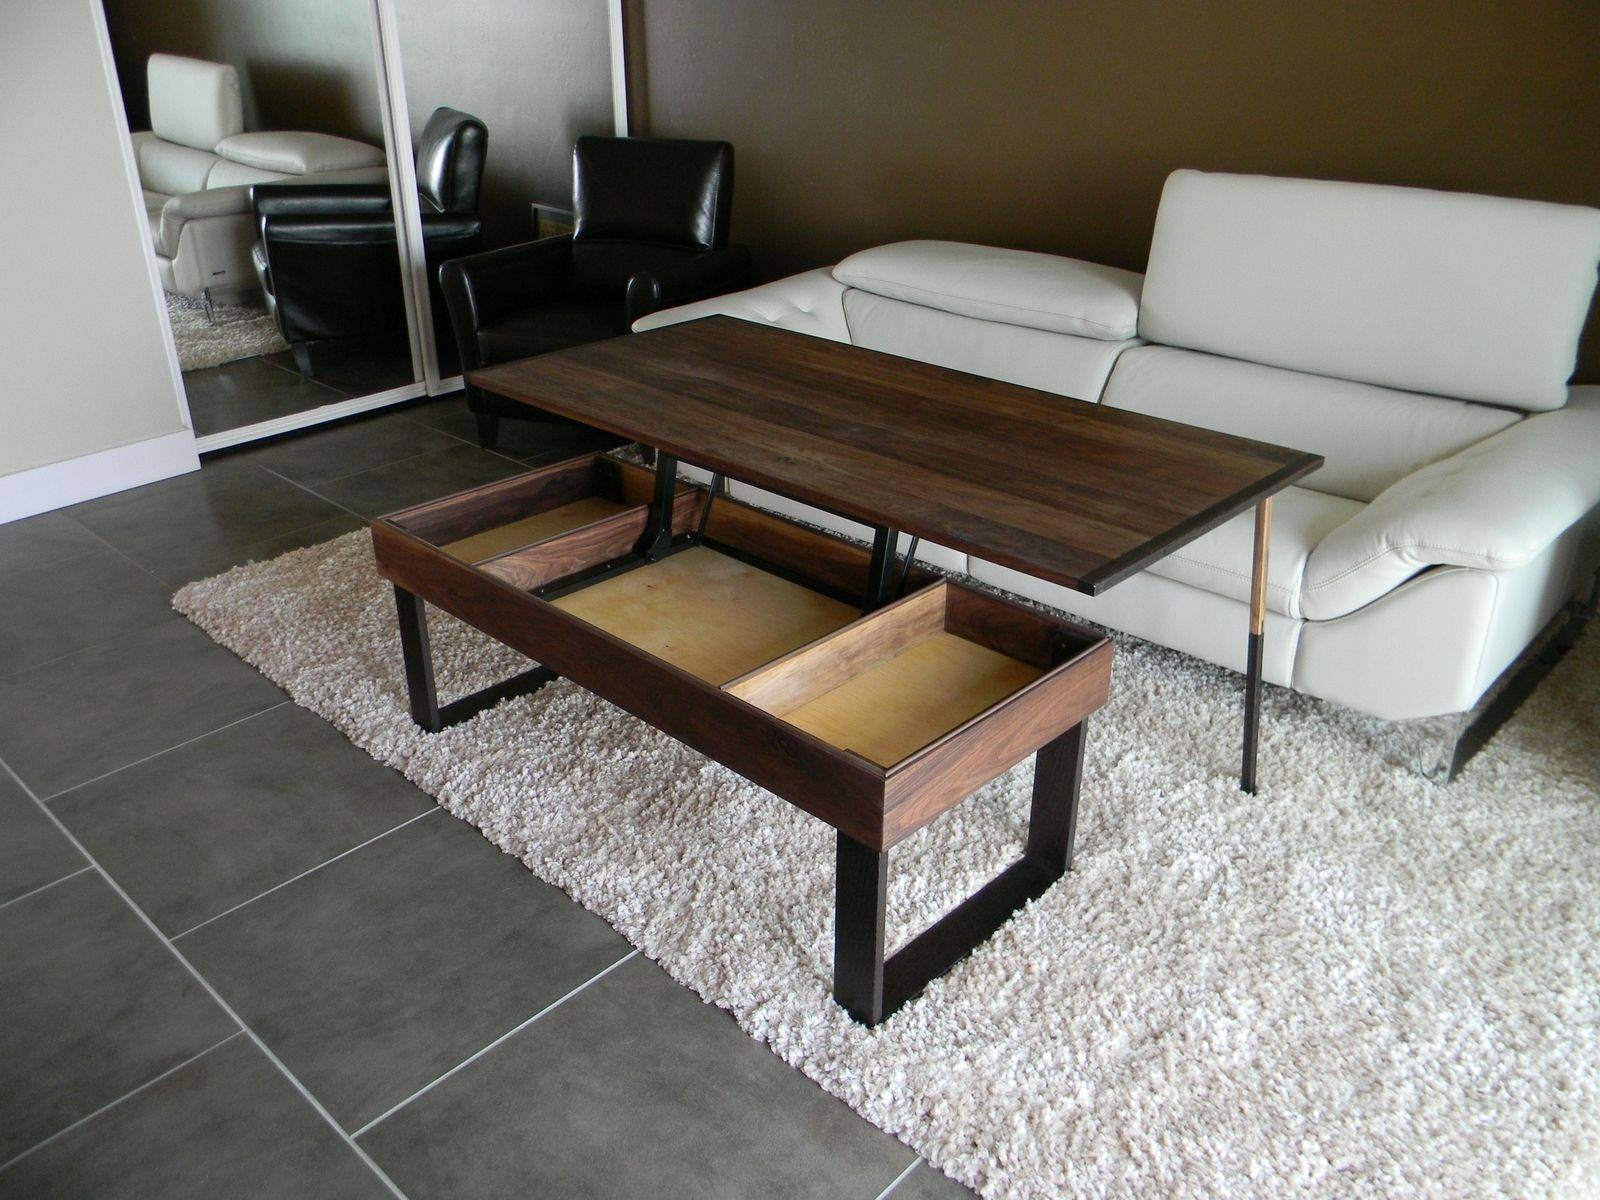 Lifting Top Coffee Table | Coffee Tables Decoration intended for Top Lifting Coffee Tables (Image 18 of 30)